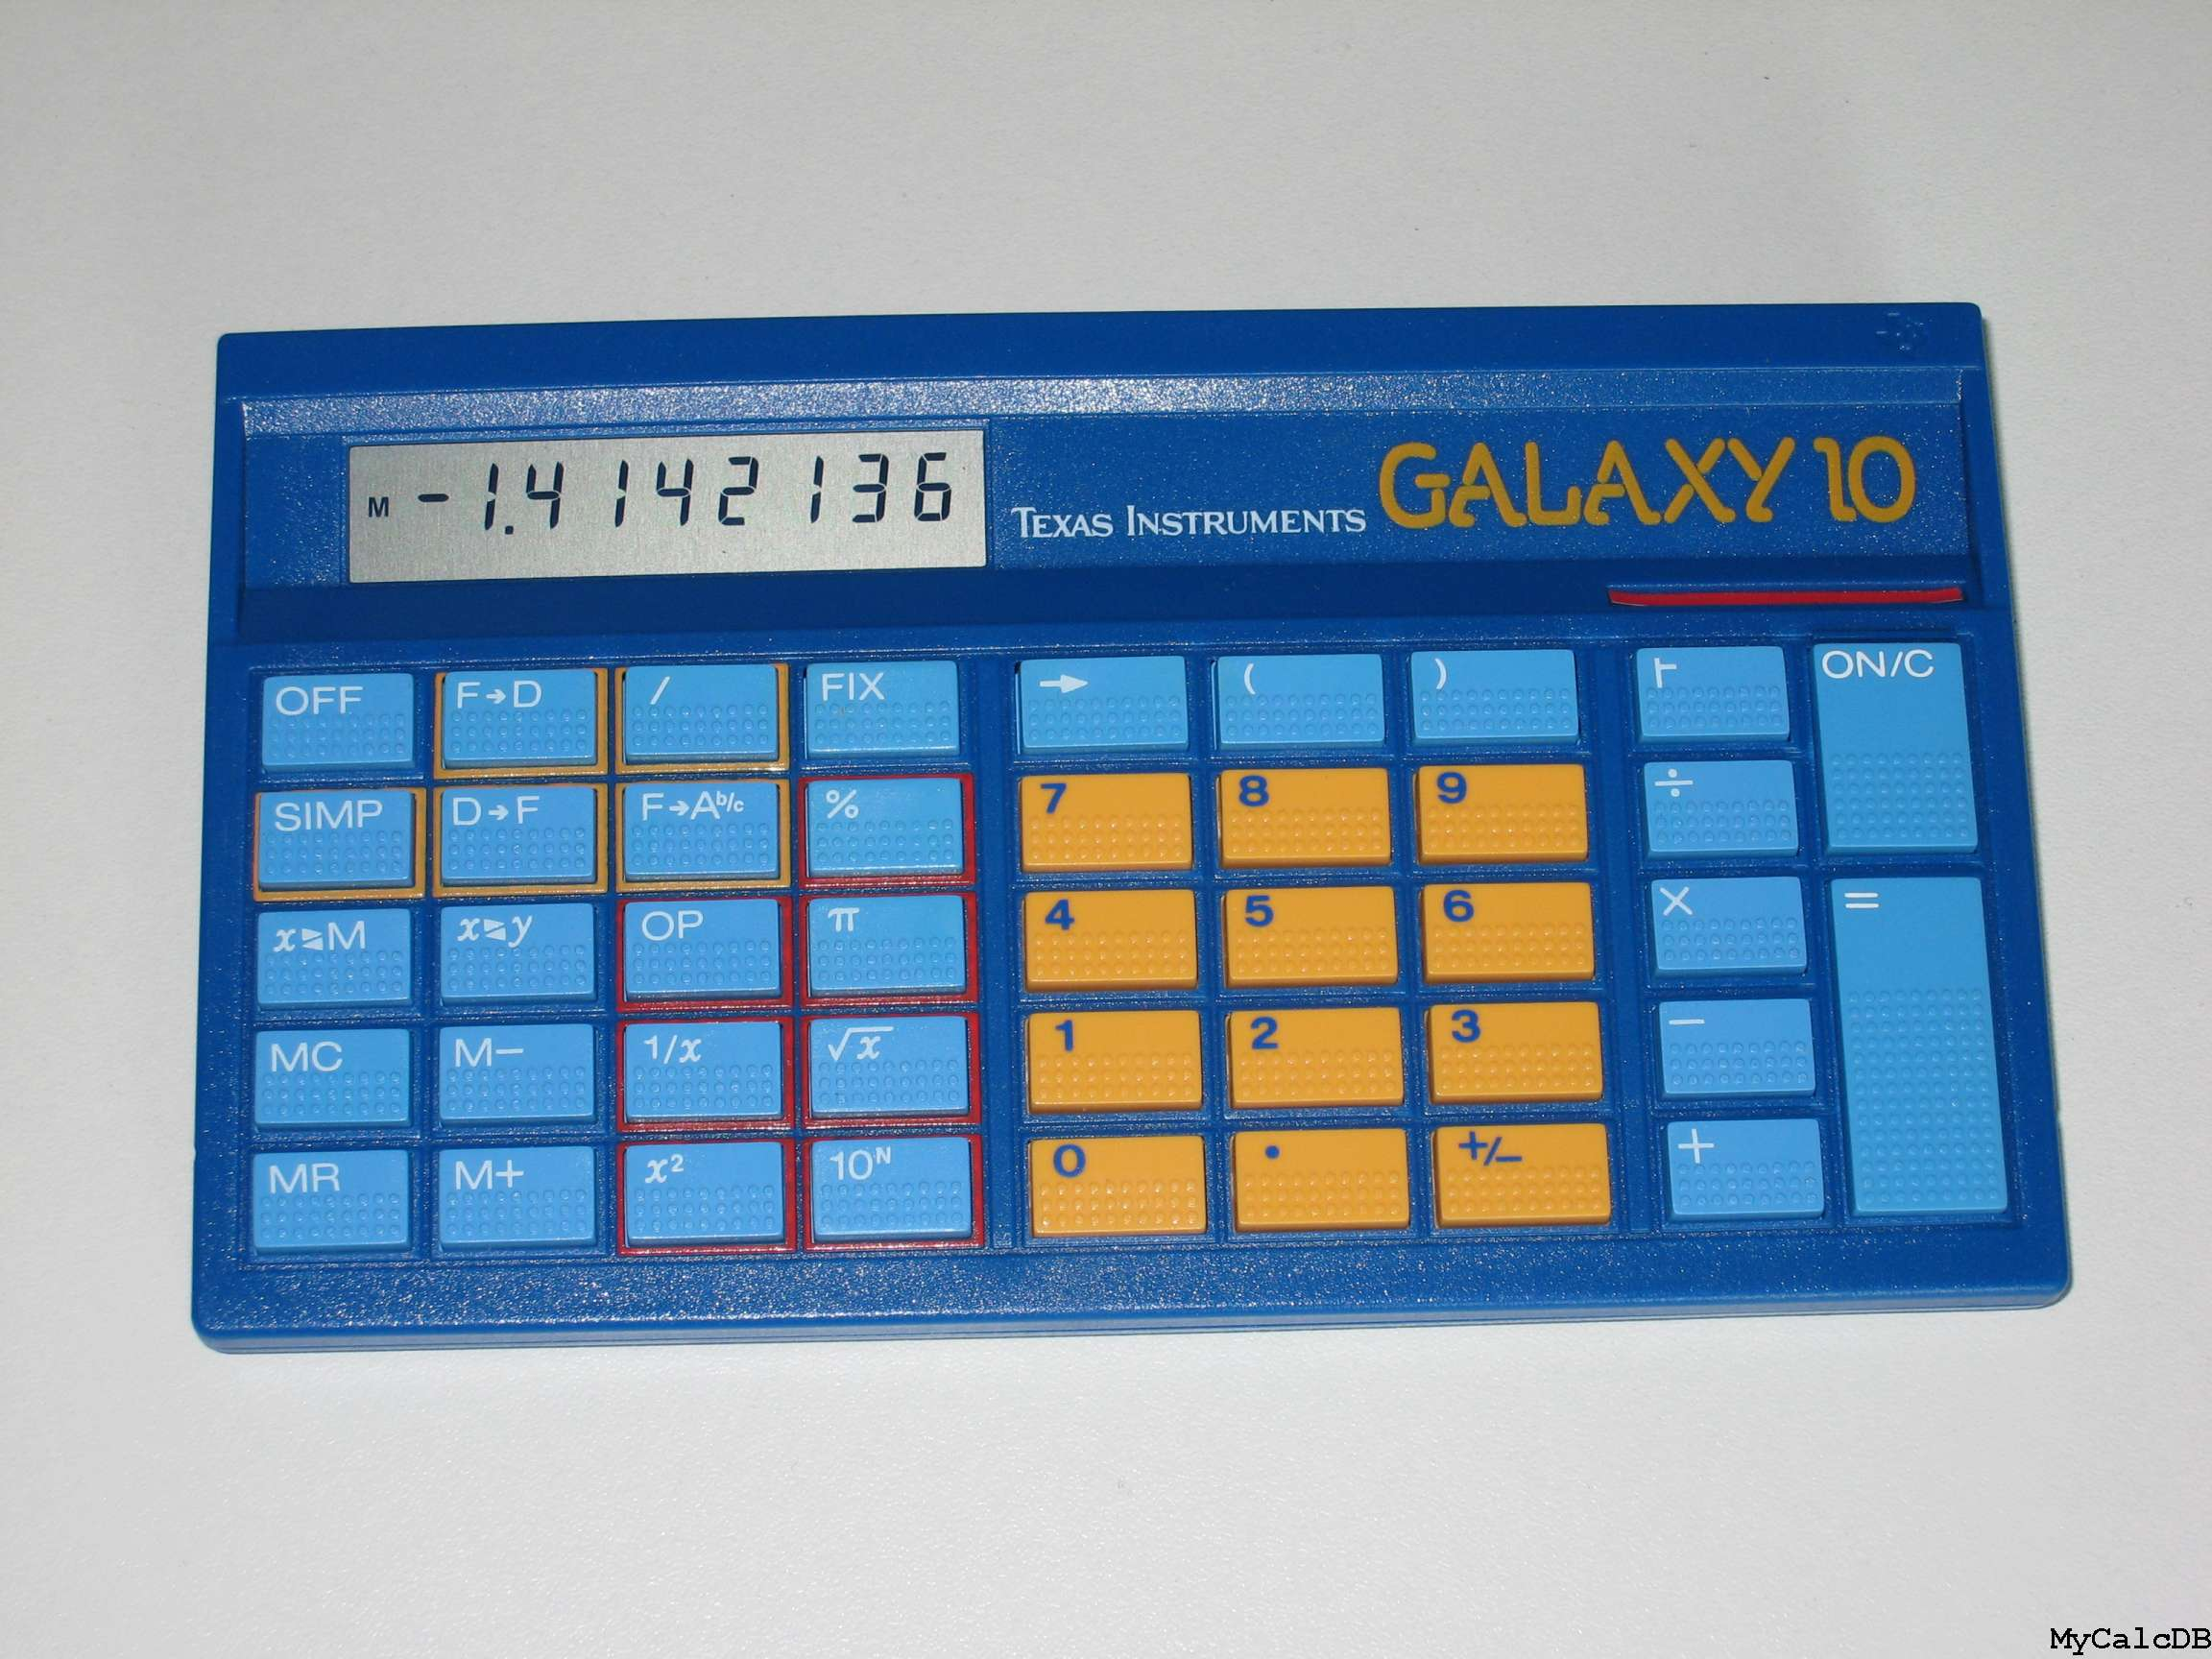 Texas Instruments GALAXY 10